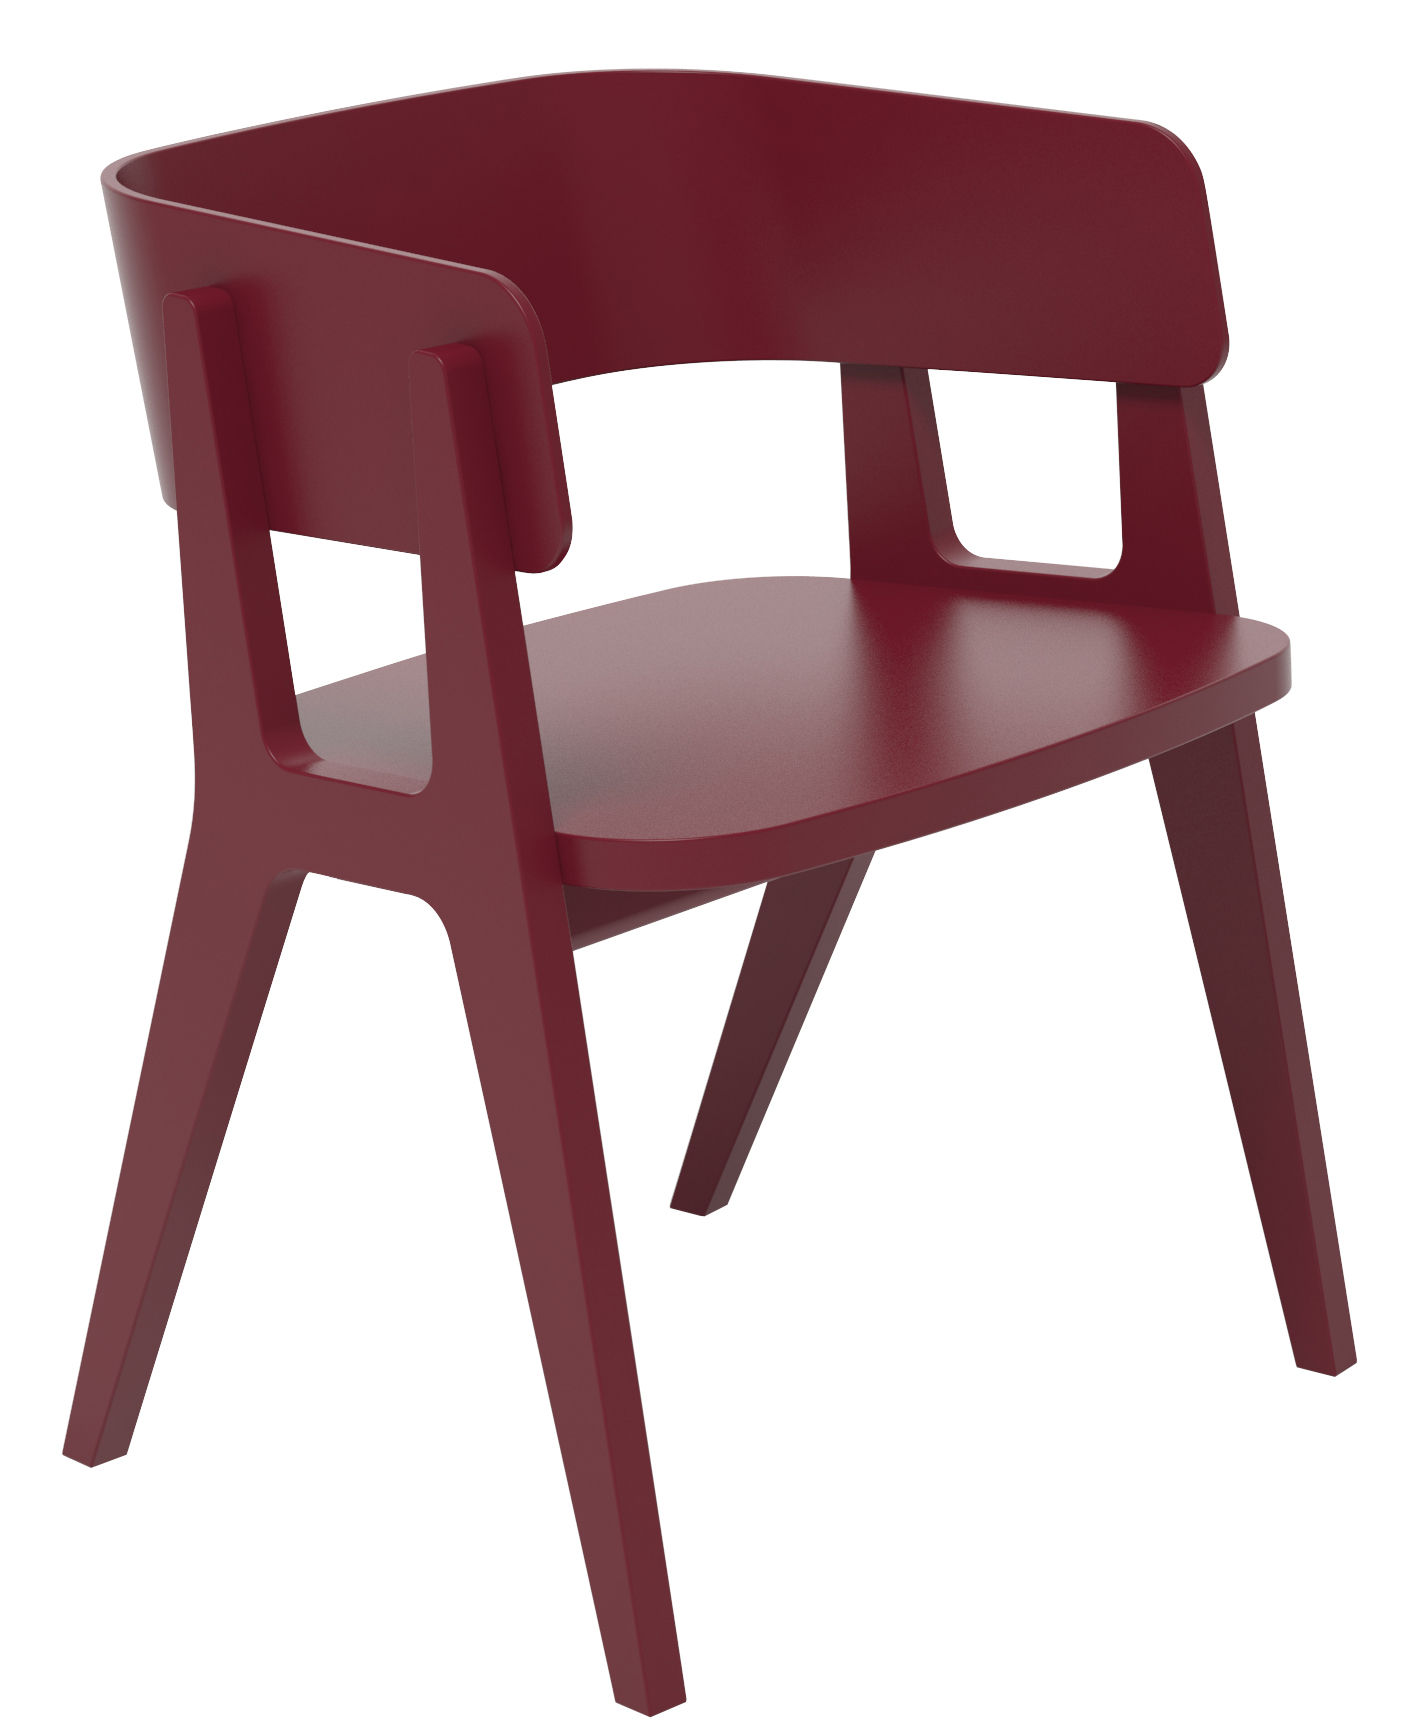 Fauteuil henri bois bordeaux made in design editions - Fauteuil made in design ...